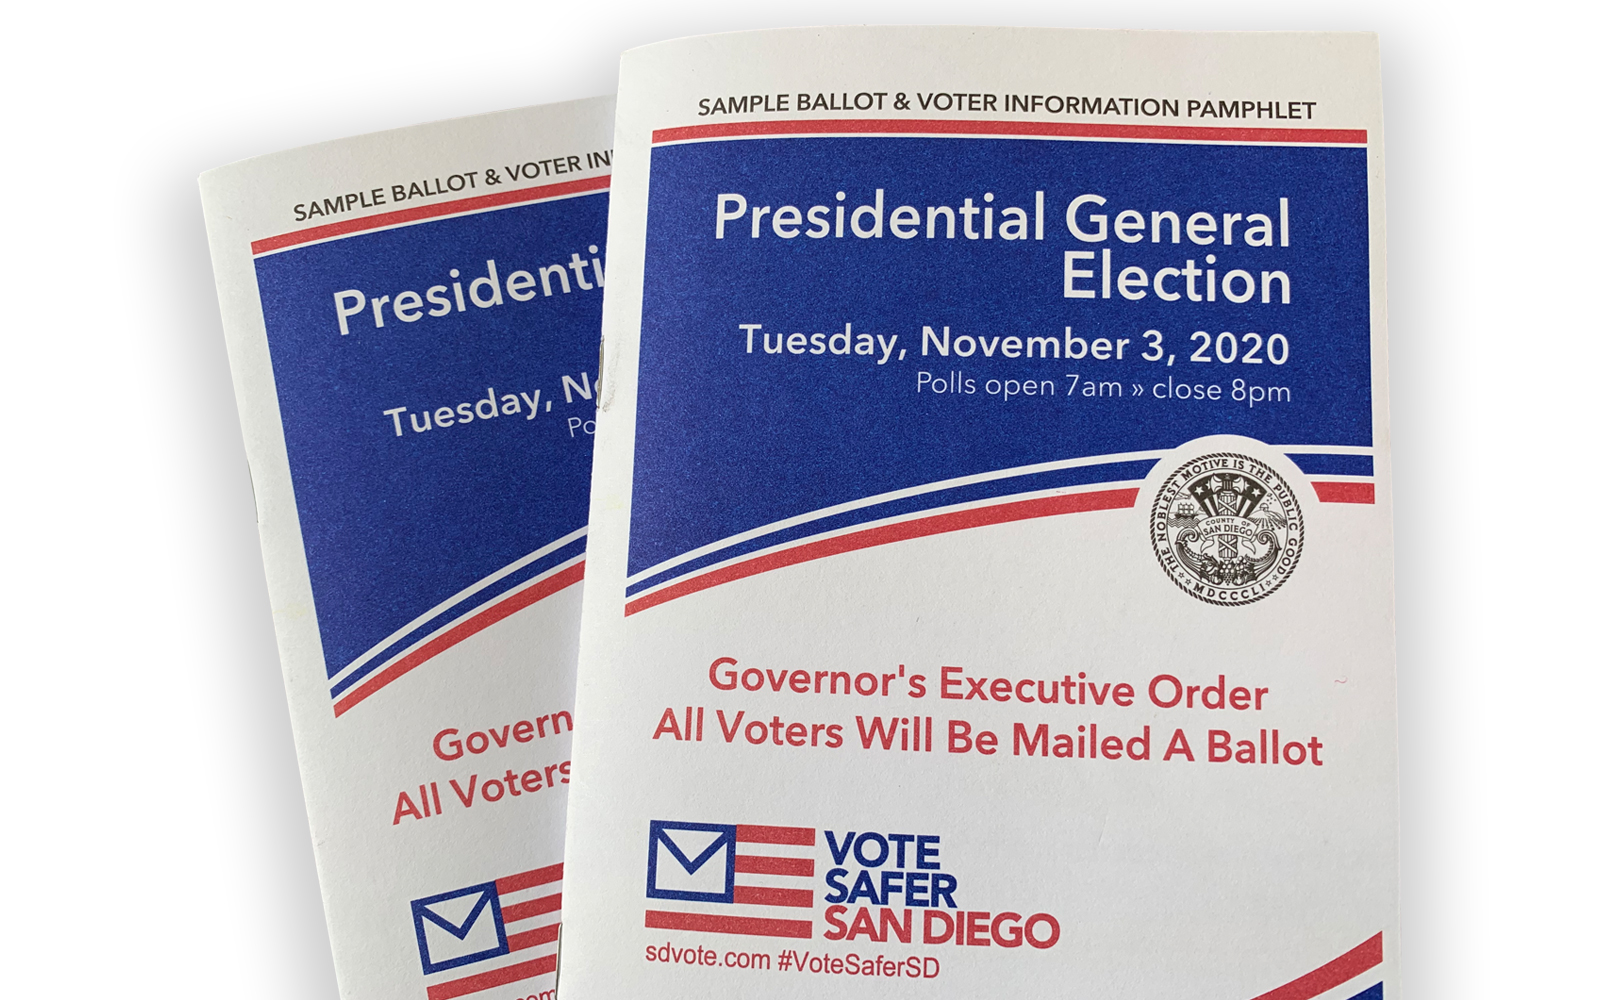 sample ballots and voter information pamphlet